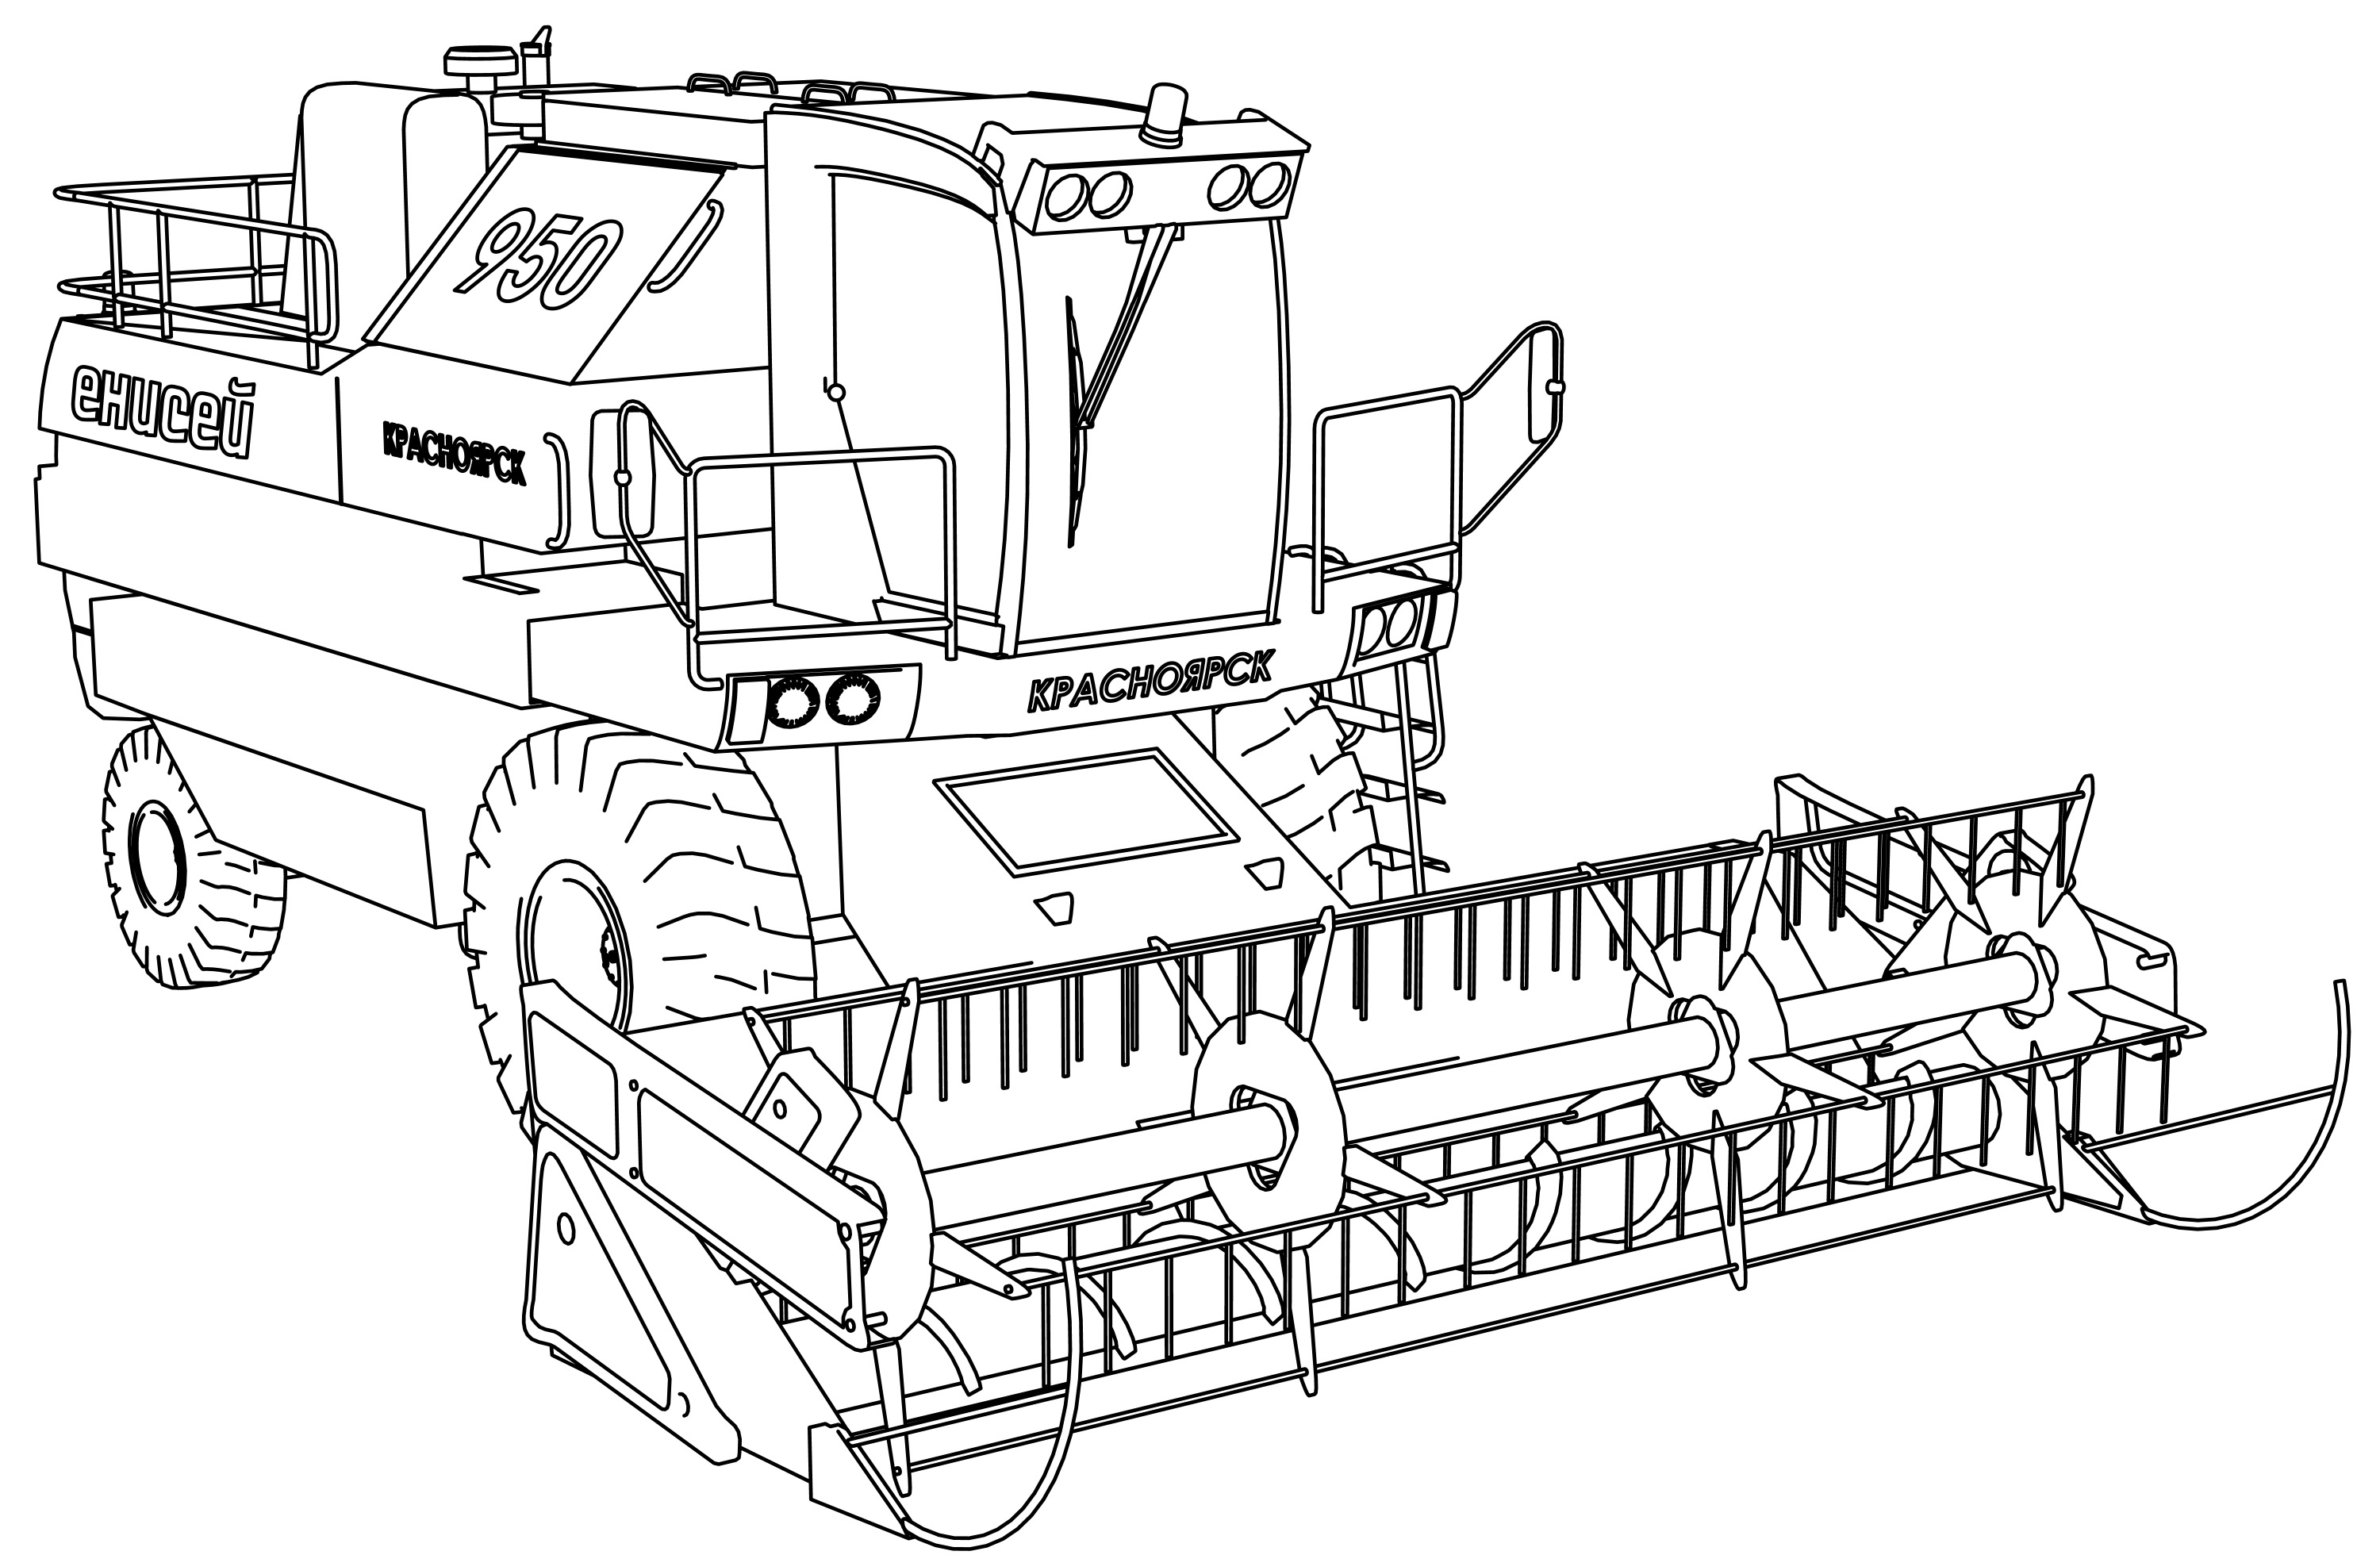 Work Vehicle Coloring Pages Wecoloringpage Works Of Coloring Pages